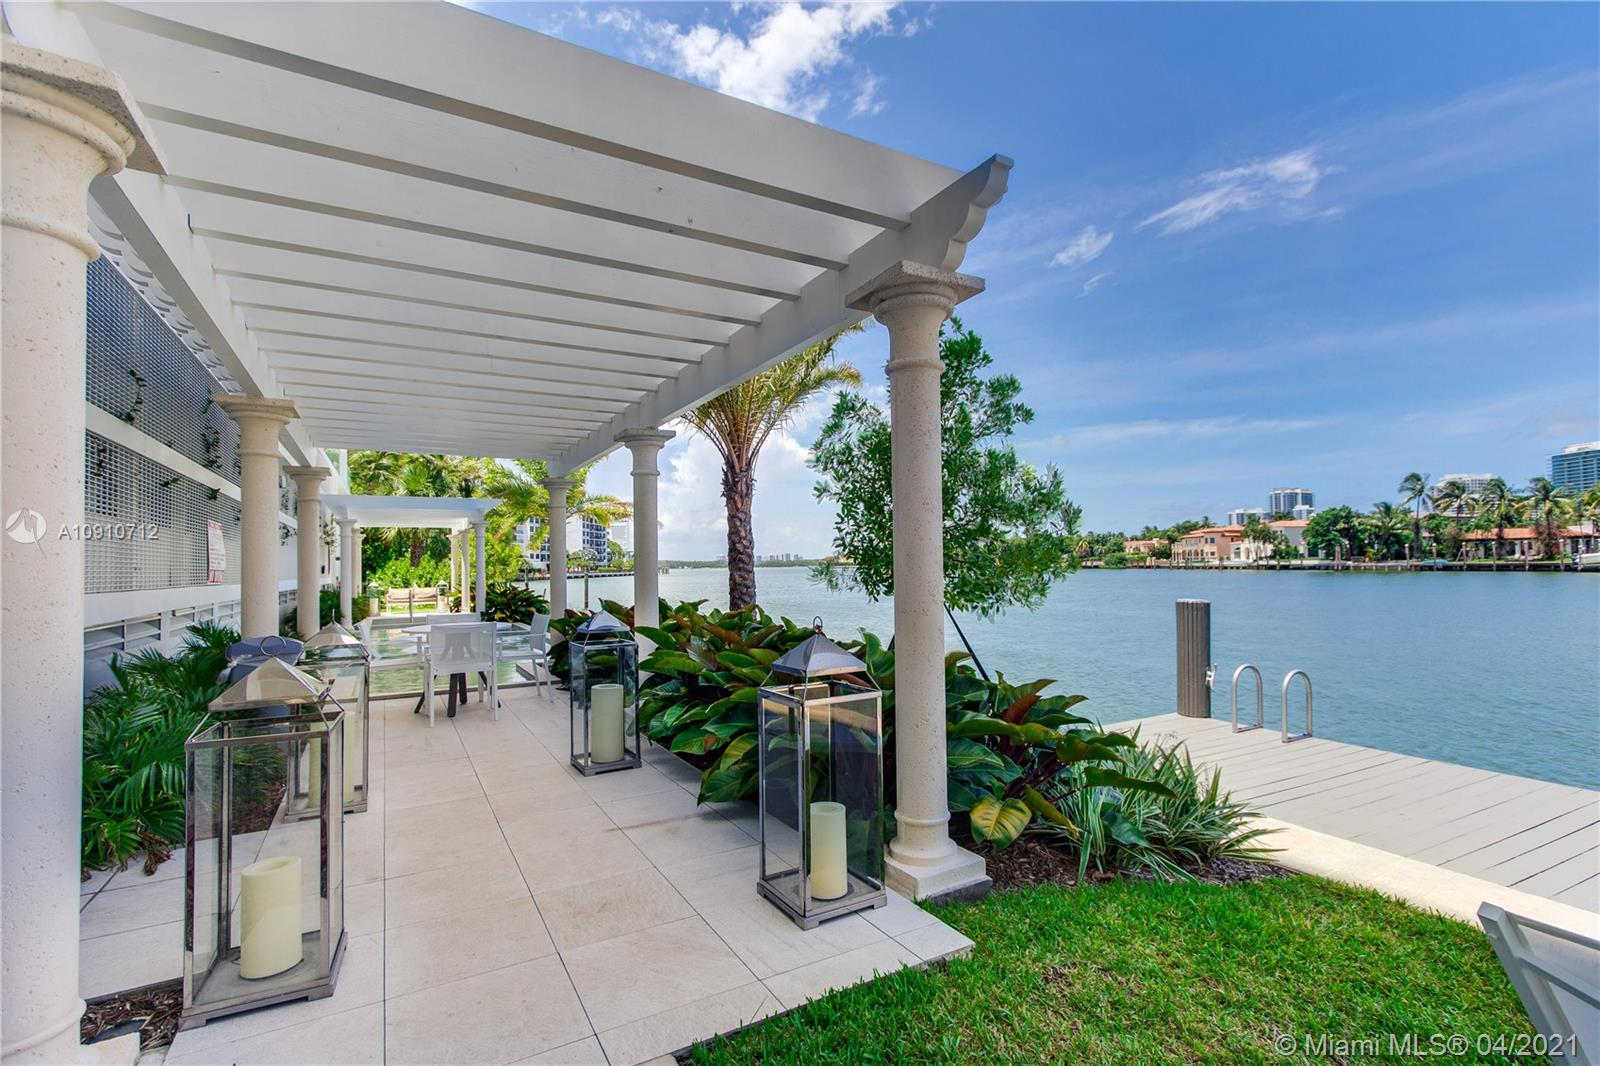 Luxury boutique building on the intracoastal in sought after Bay Harbor Islands. The interior is beautifully furnished in a clean contemporary style, relaxed with amazing views of the intracoastal waterway from a wide curving balcony, floor to ceiling windows and sliding doors, kitchen and bathrooms fitted with European cabinetry and quartz countertops, marble floors in the bathrooms. The building boutique style offers on the third floor deck zero edge sunset pool with boomerang shape infinity Hot-Tub and cascading waterfall, fitness facilities, steam room and showers, also Bayfront water deck, Hot-Tub and Summer Kitchen, water sports such as paddle boarding and kayaking. Unit come with Storage